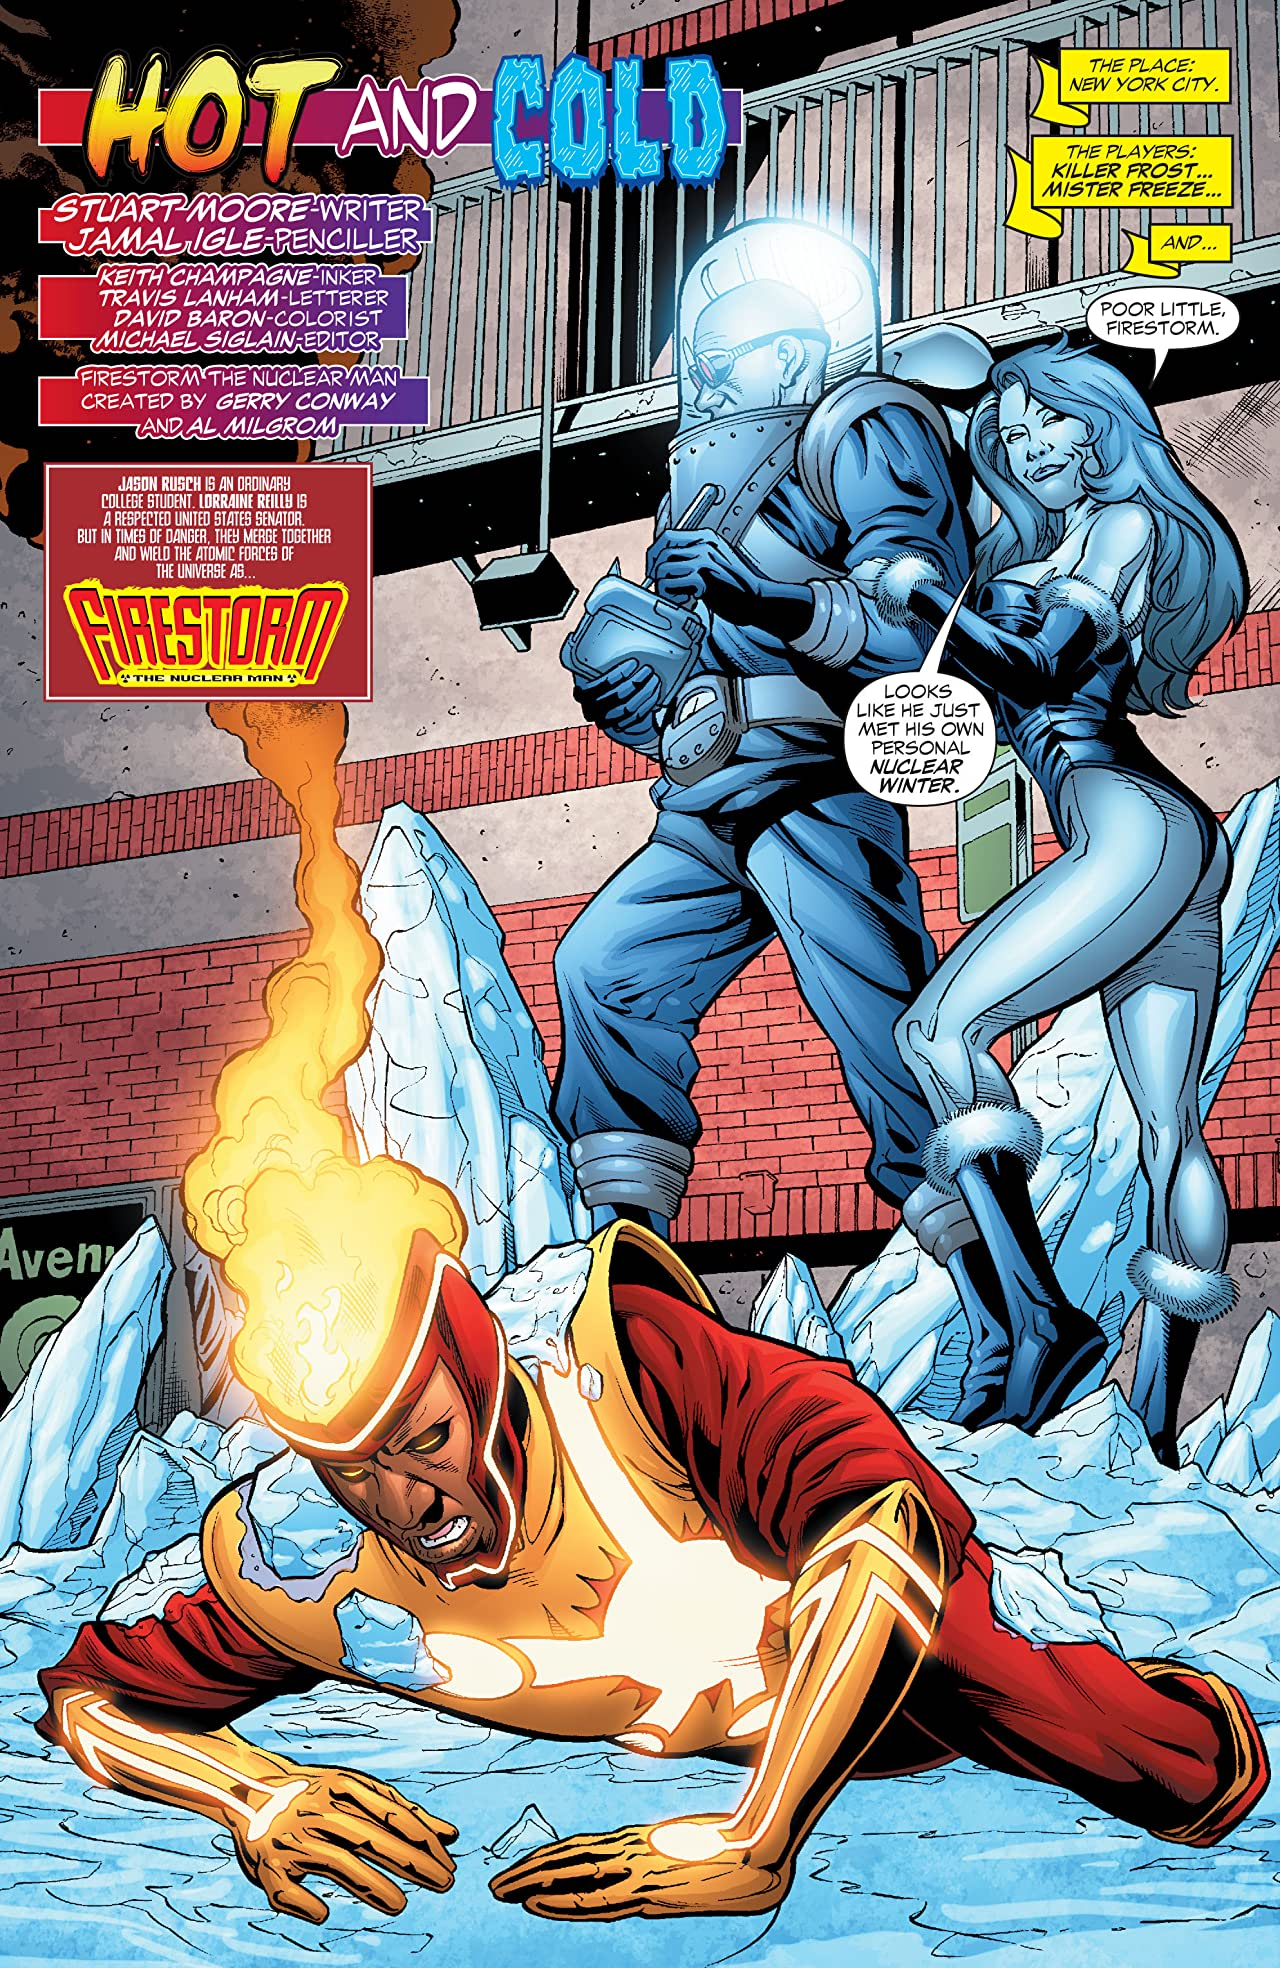 Firestorm: The Nuclear Man (2004-2007) #25